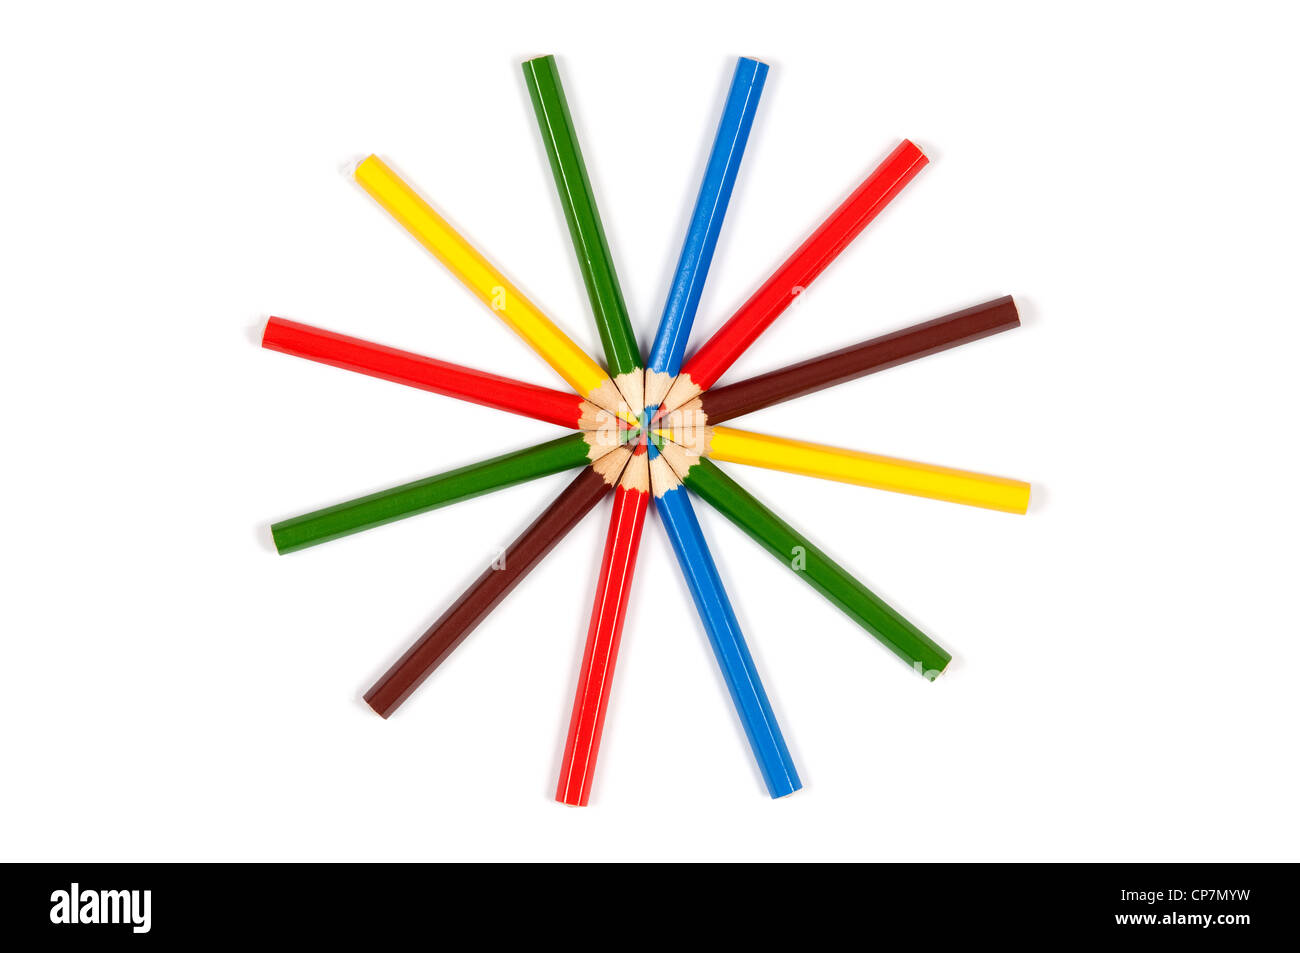 Many colored pencils arranged in circle over white background - Stock Image